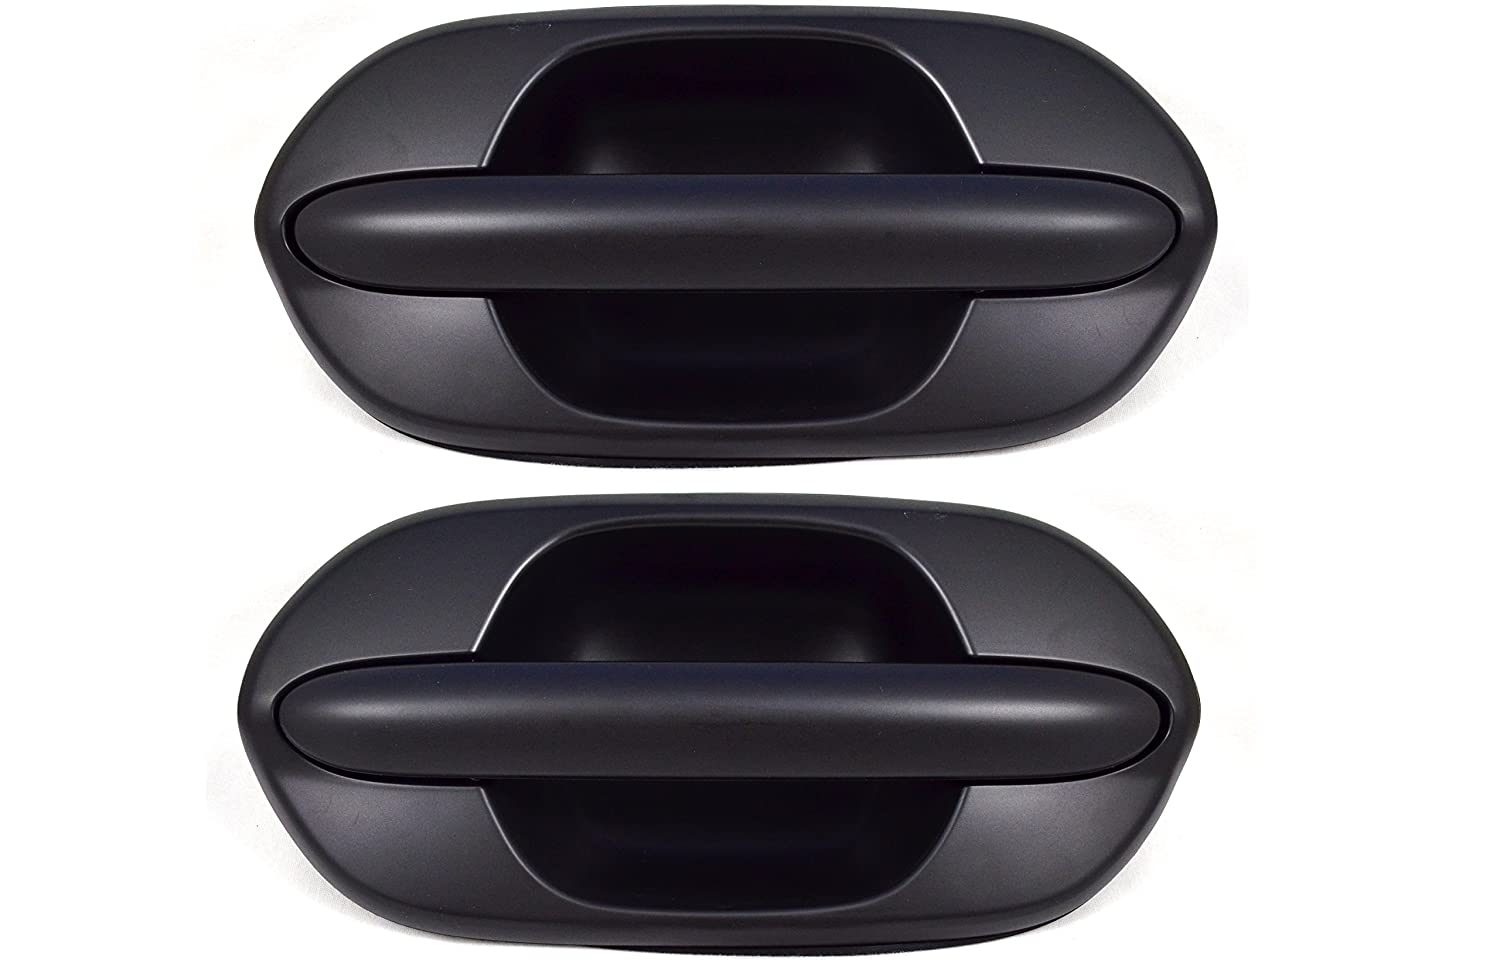 PT Auto Warehouse NI-3118P-RP Outer Exterior Outside Door Handle Primed Black Rear Left//Right Pair